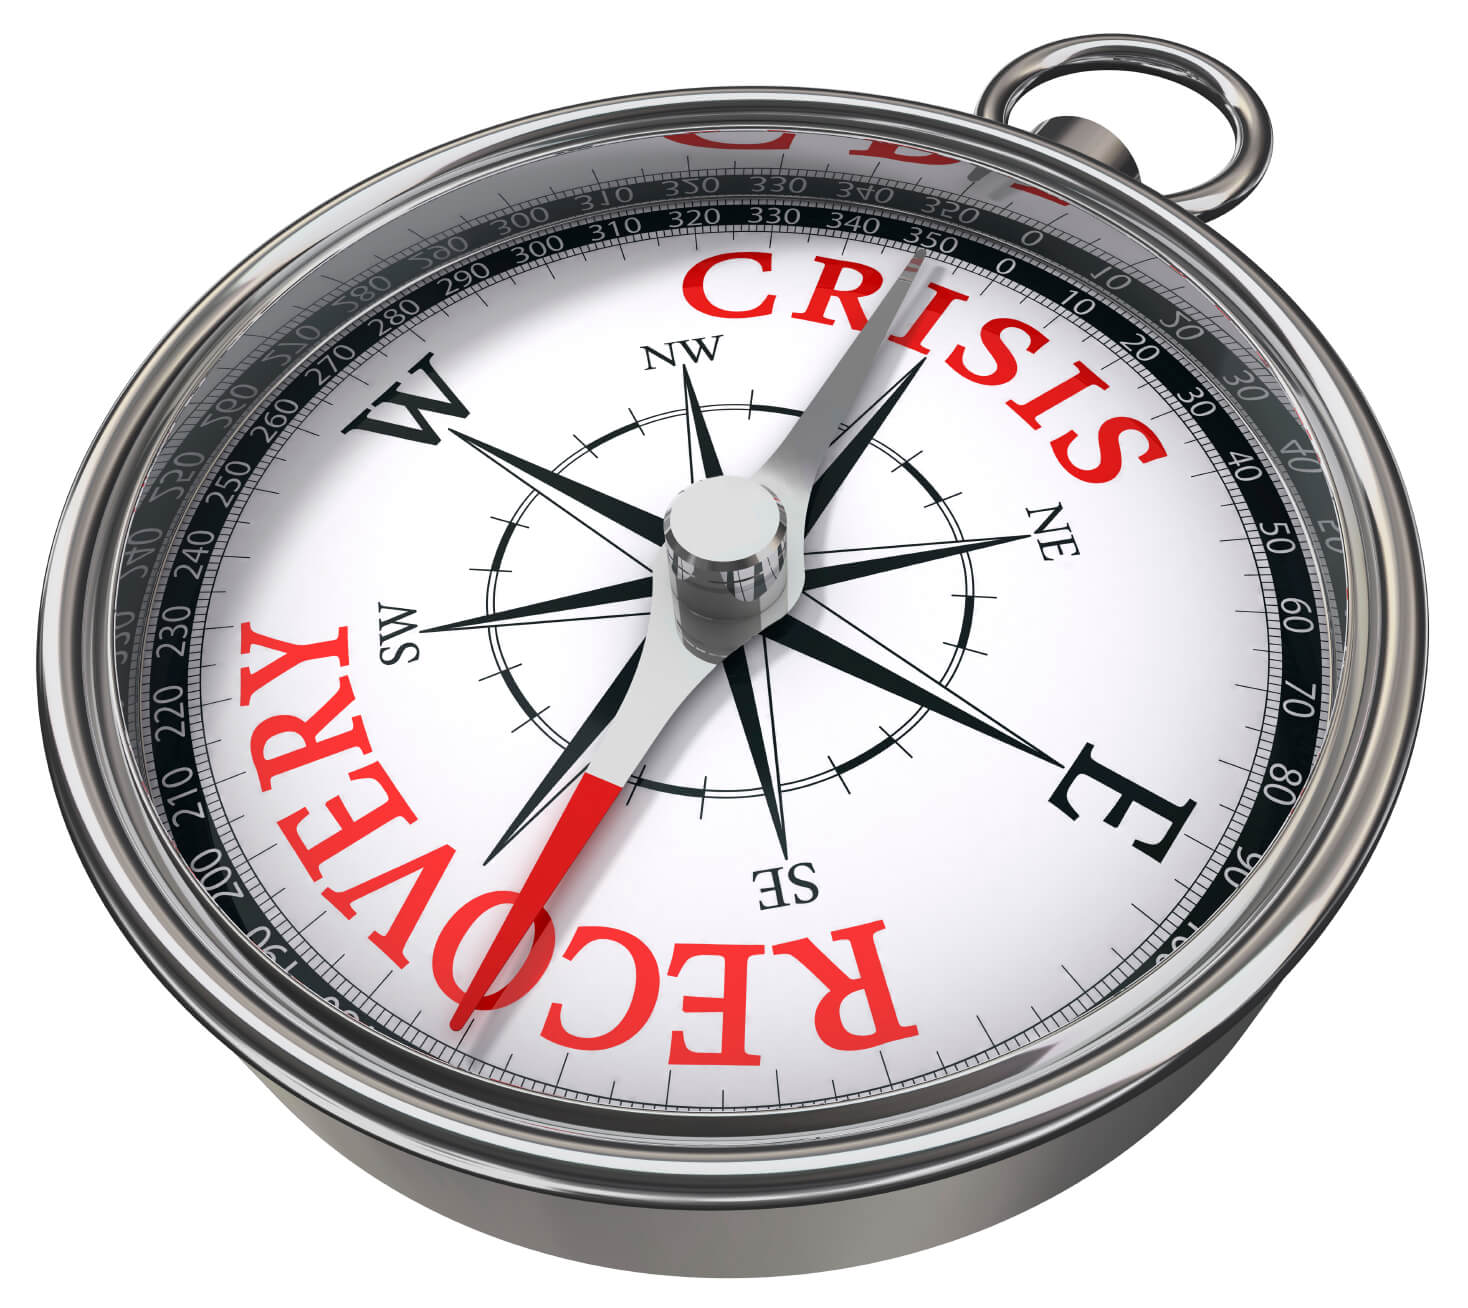 Financial advisers are optimistic that our financial compass will point to recovery soon